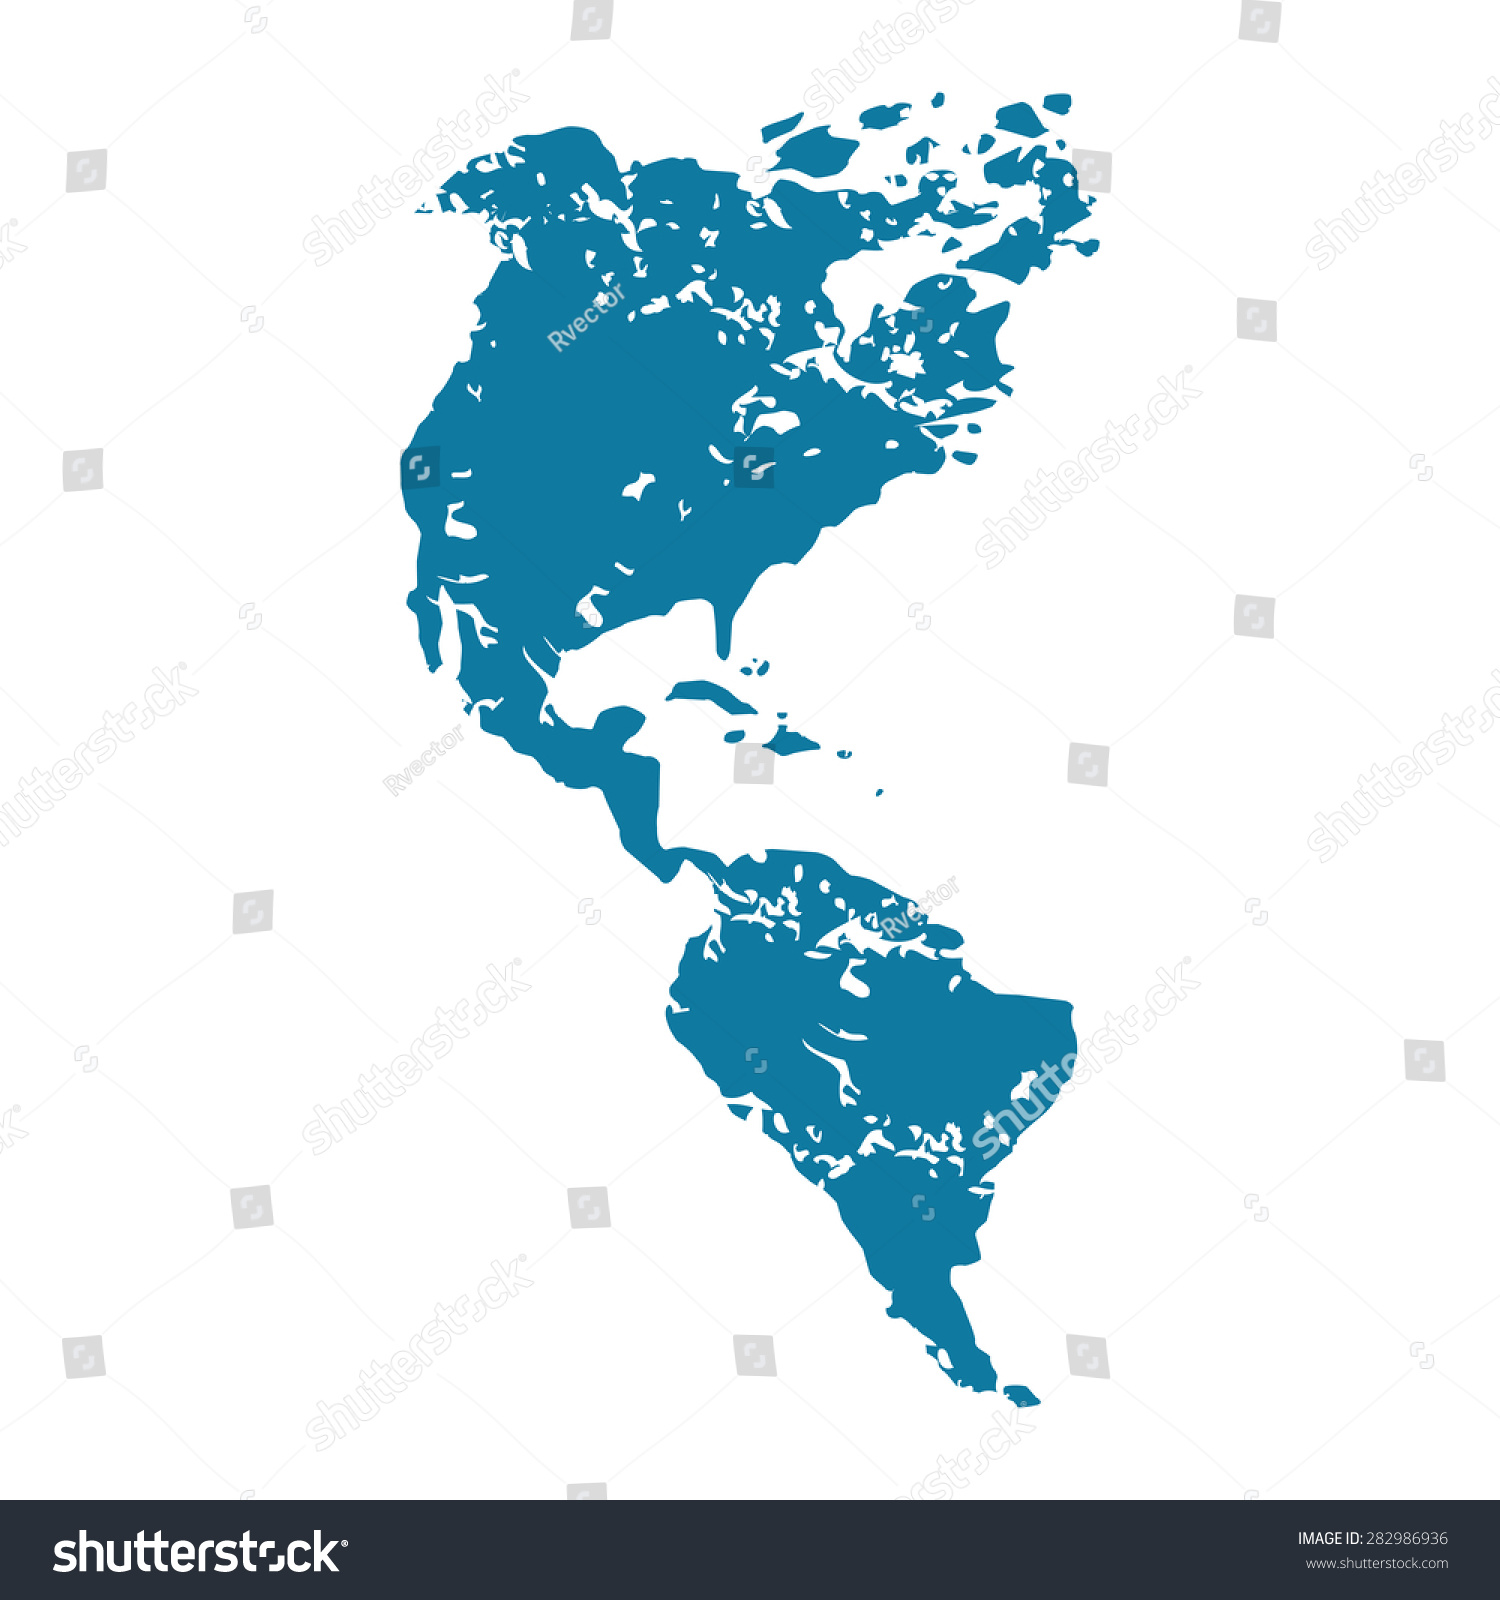 north america map and navigation icons illustration stock map of